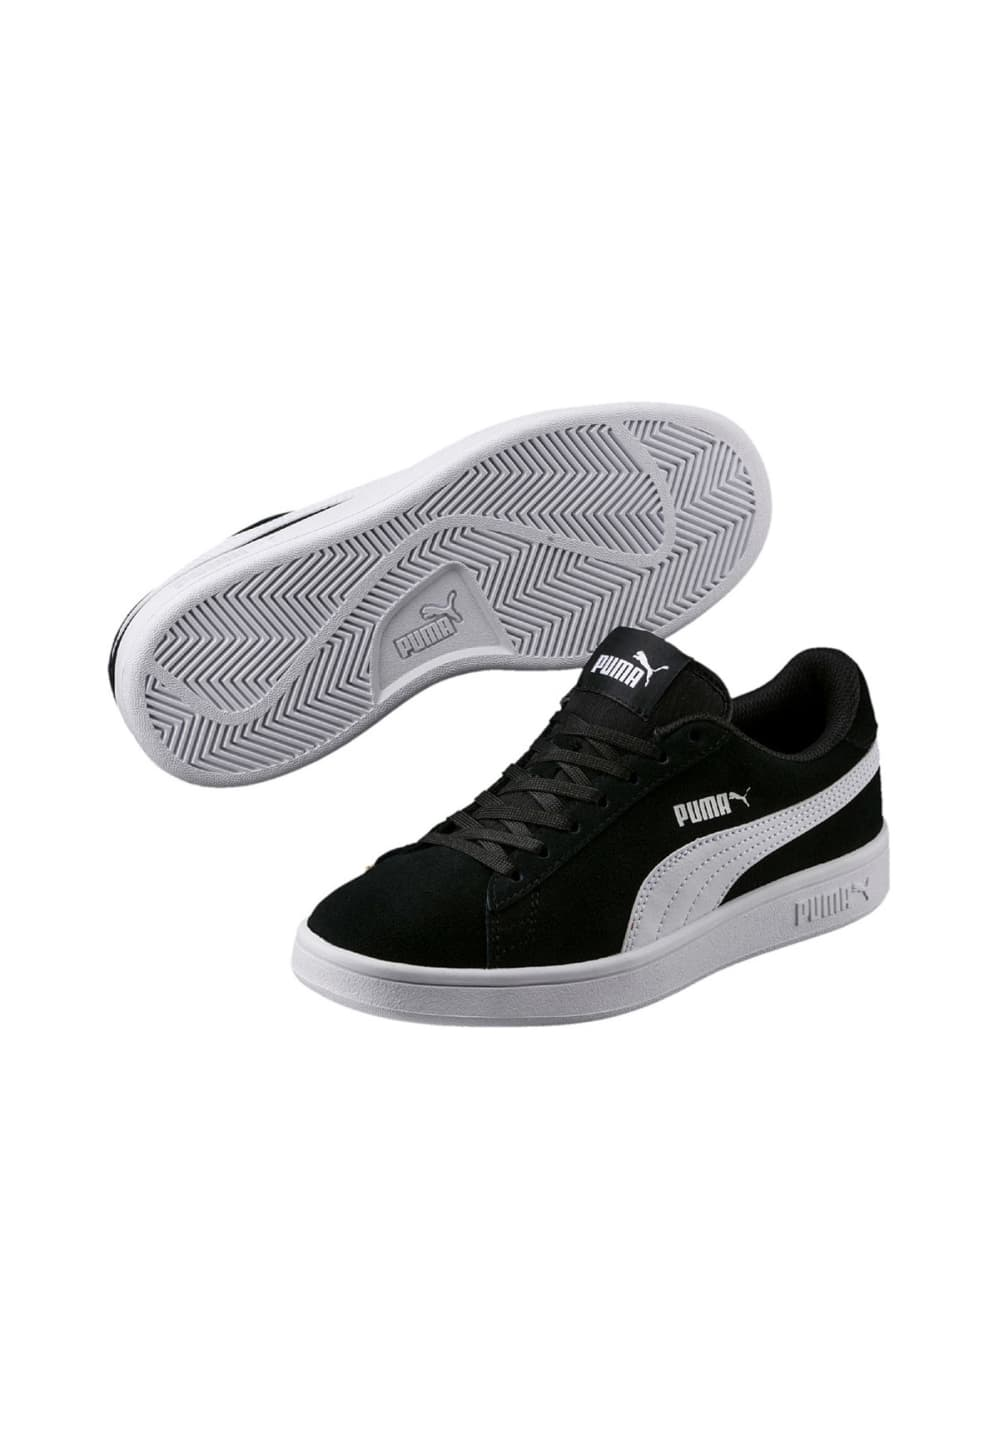 410735e837 Puma Smash v2 SD Jr - Sneaker - Black